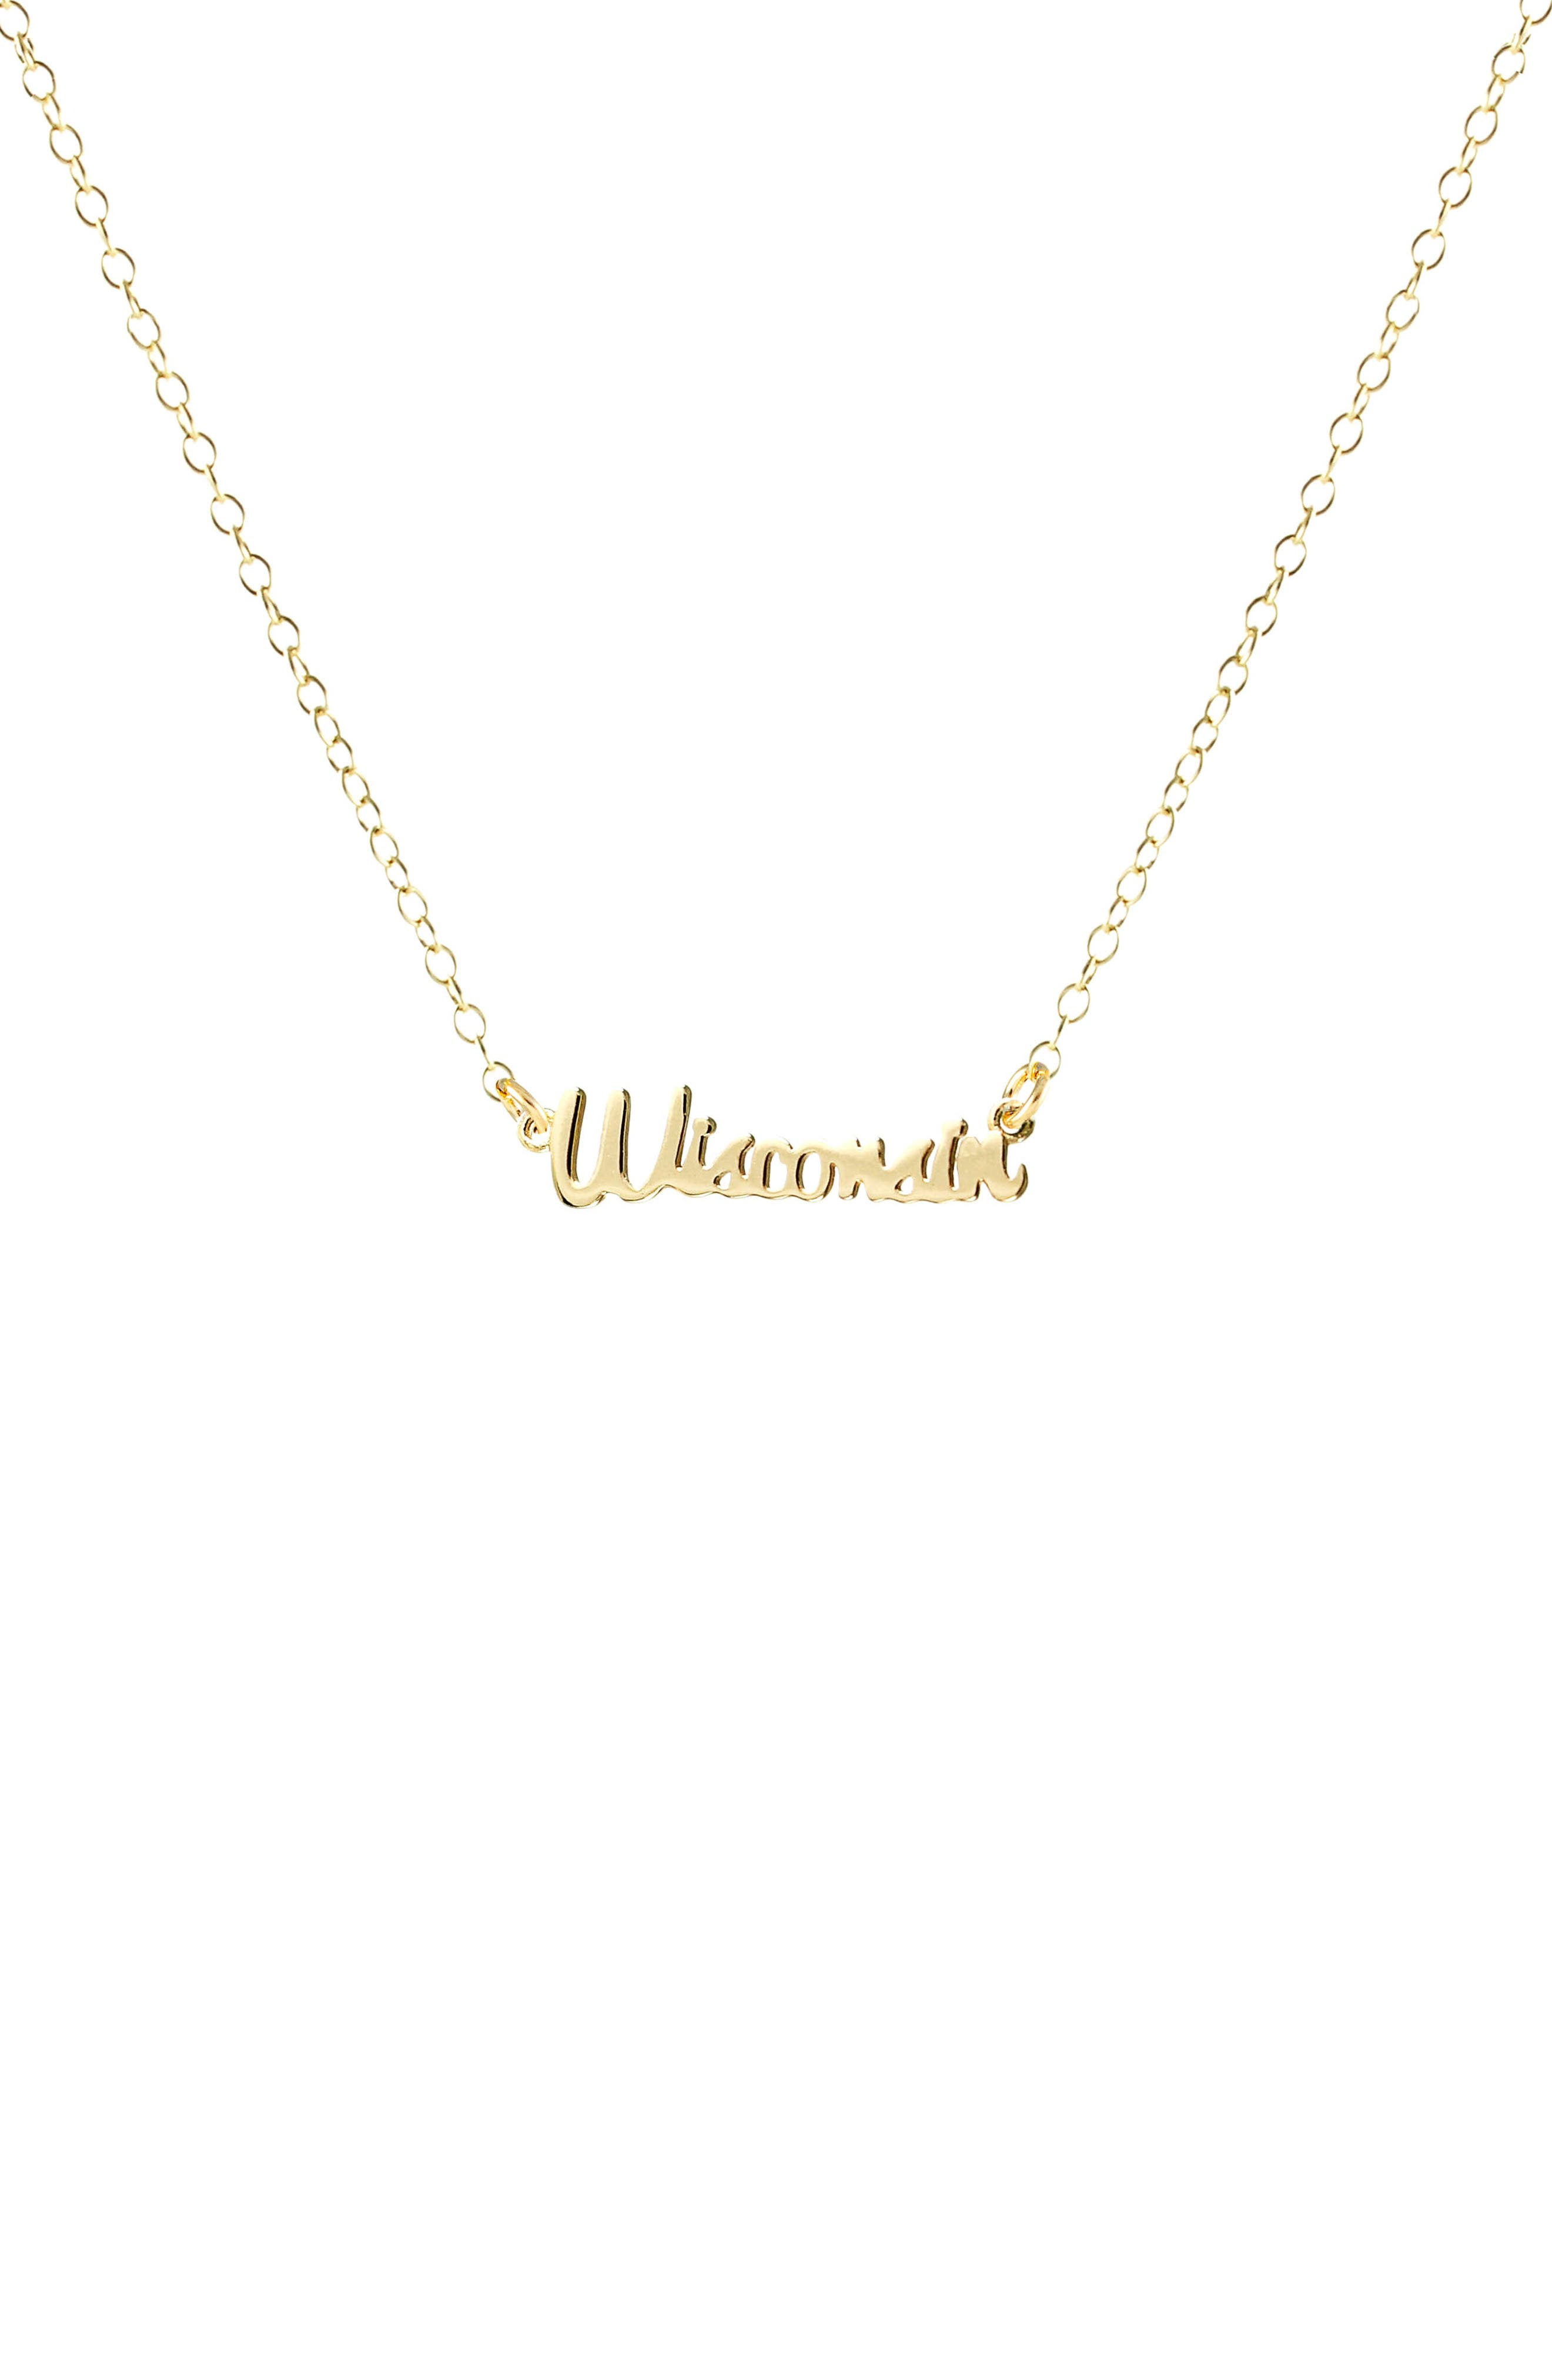 State Script Charm Necklace,                         Main,                         color, Wisconsin - Gold